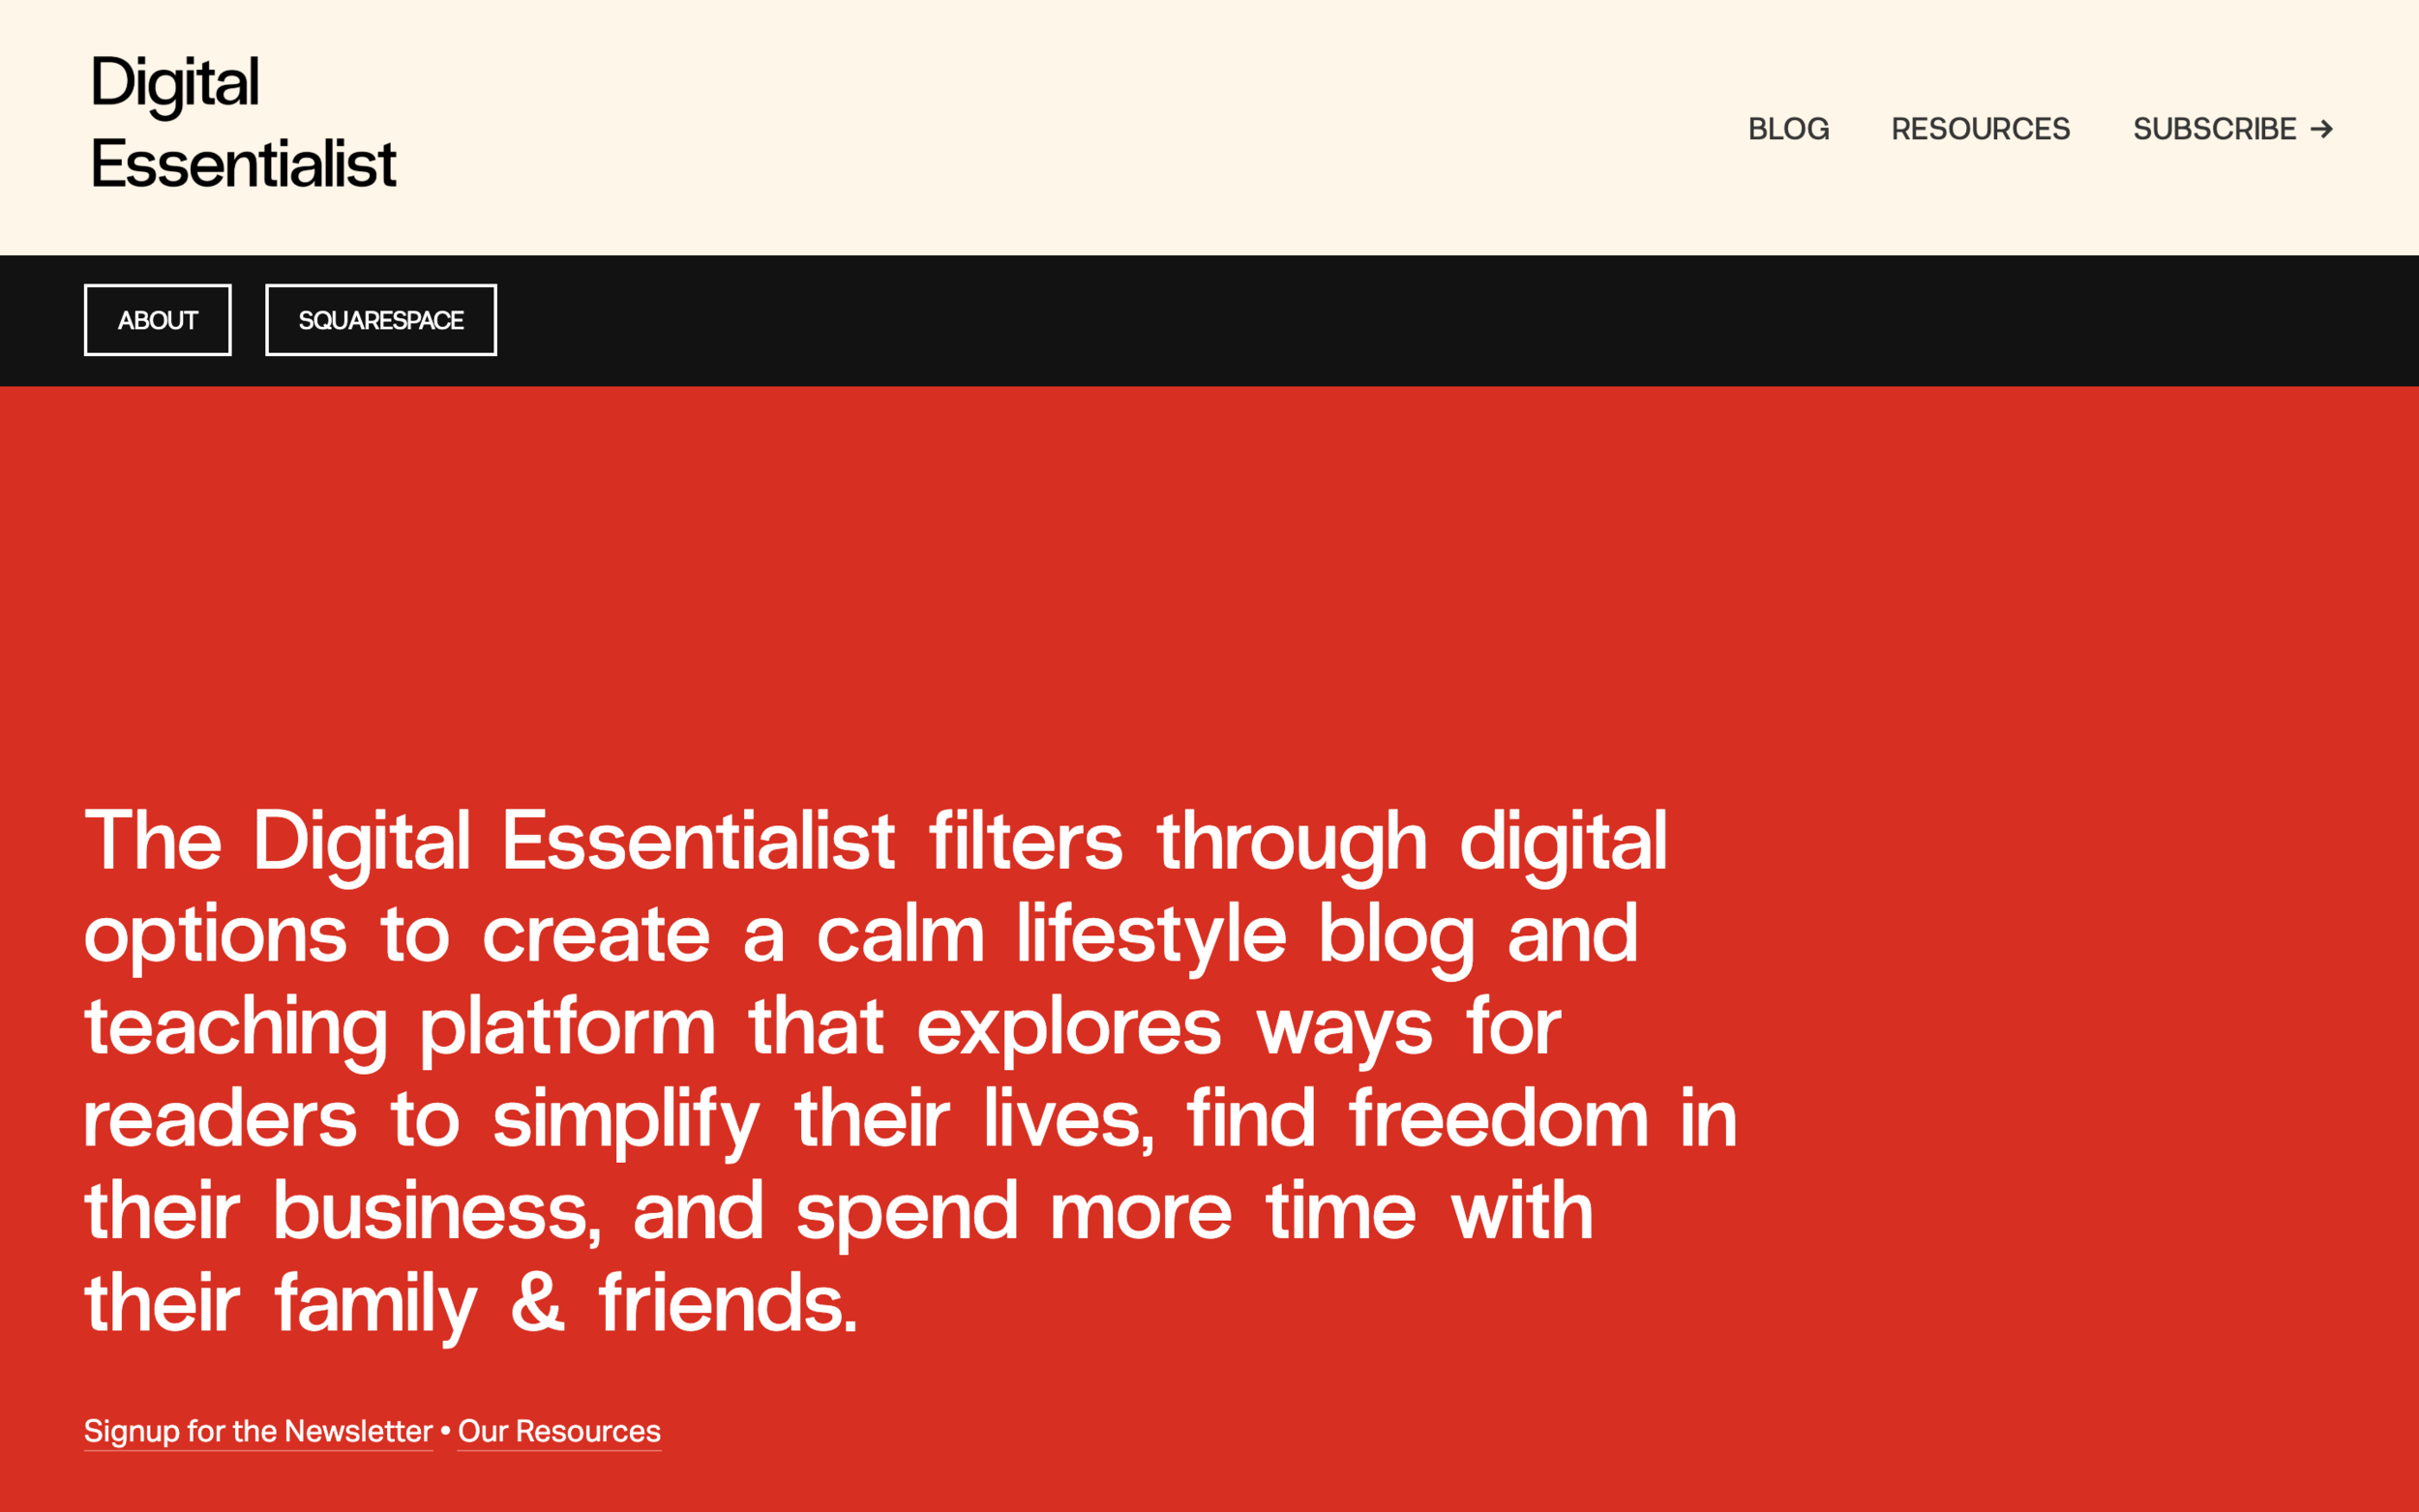 digitalessentialist.com - Blog Squarespace Website BuildThe Digital Essentialist filters through digital options to create a calm lifestyle blog and teaching platform that explores ways for readers to simplify their lives, find freedom in their business, and spend more time with their family & friends. It's a Squarespace blog and newsletter platform.